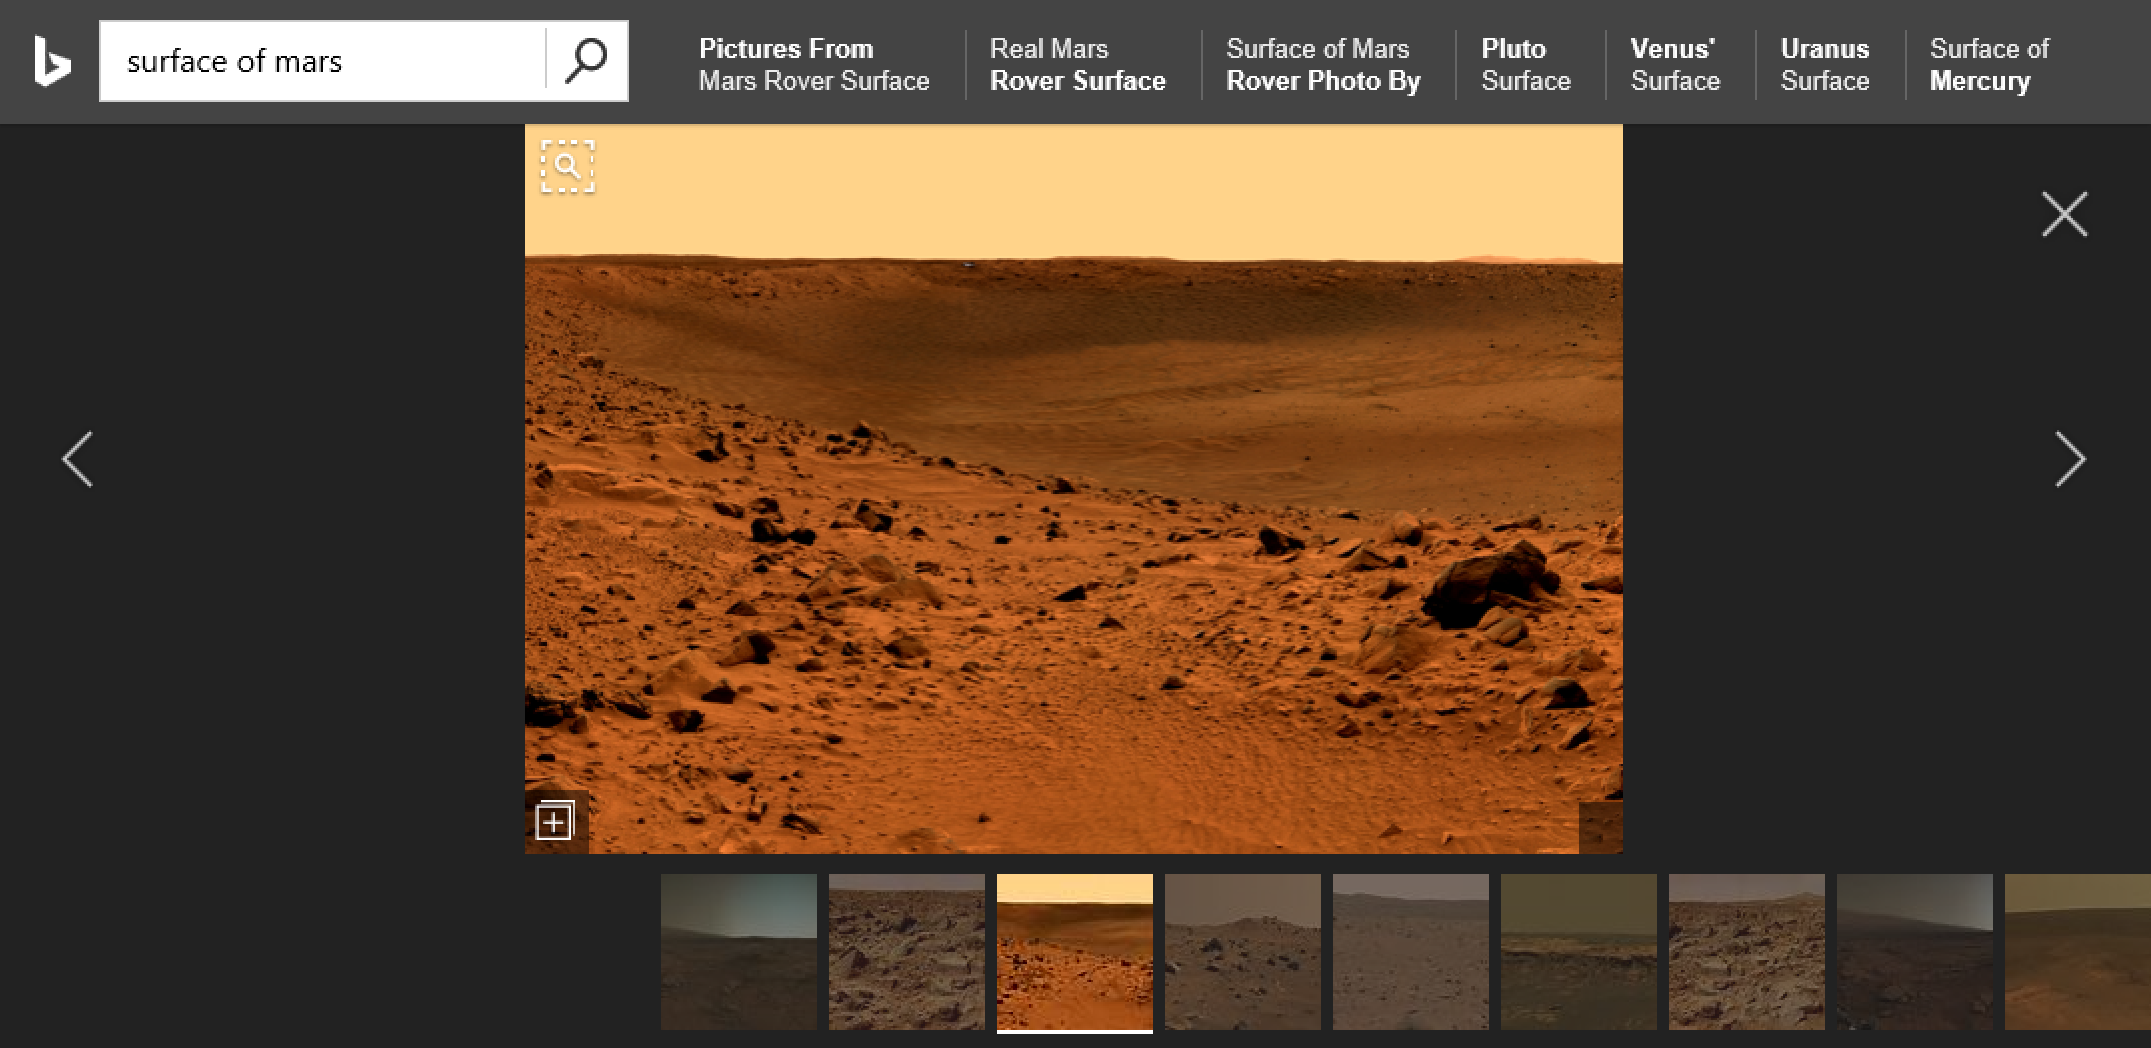 Bing Image Search Close Up On The Nasa Surface Of Mars